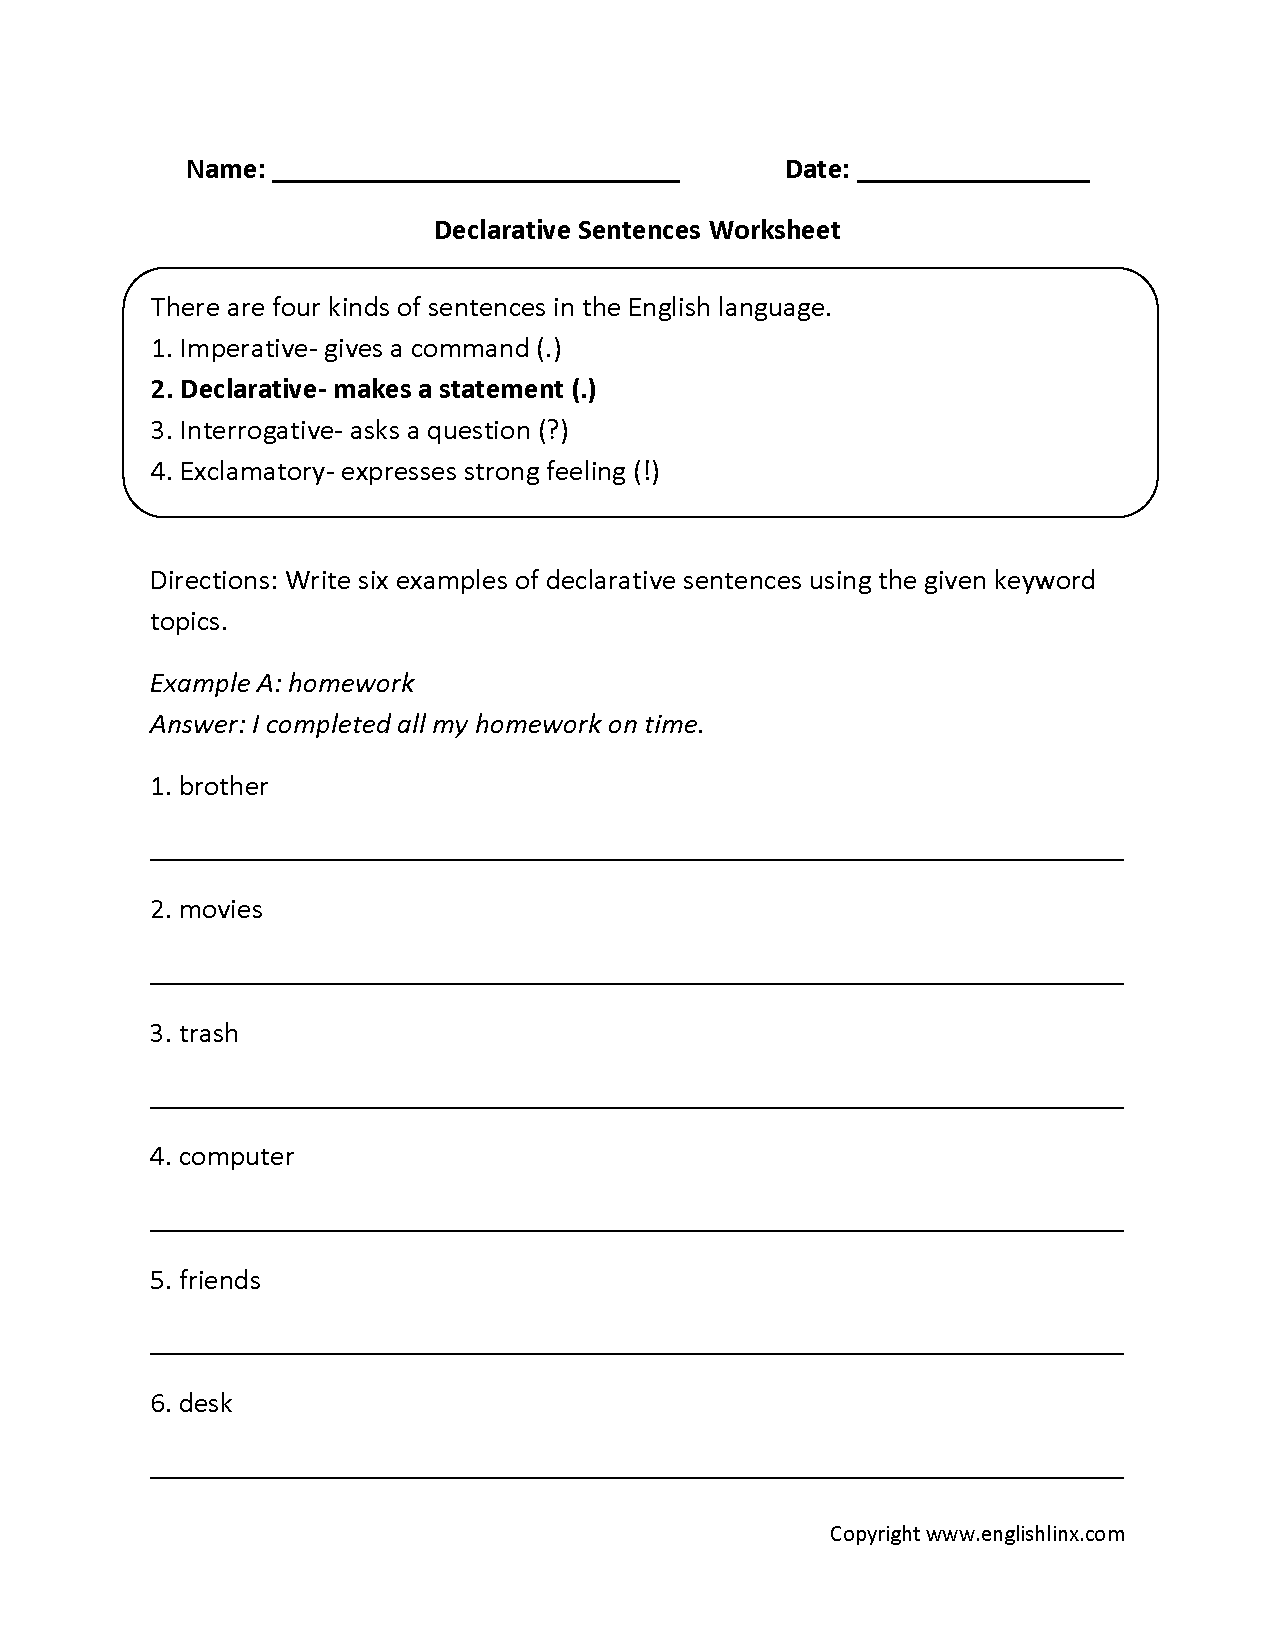 Declarative Types Of Sentences Worksheets Education